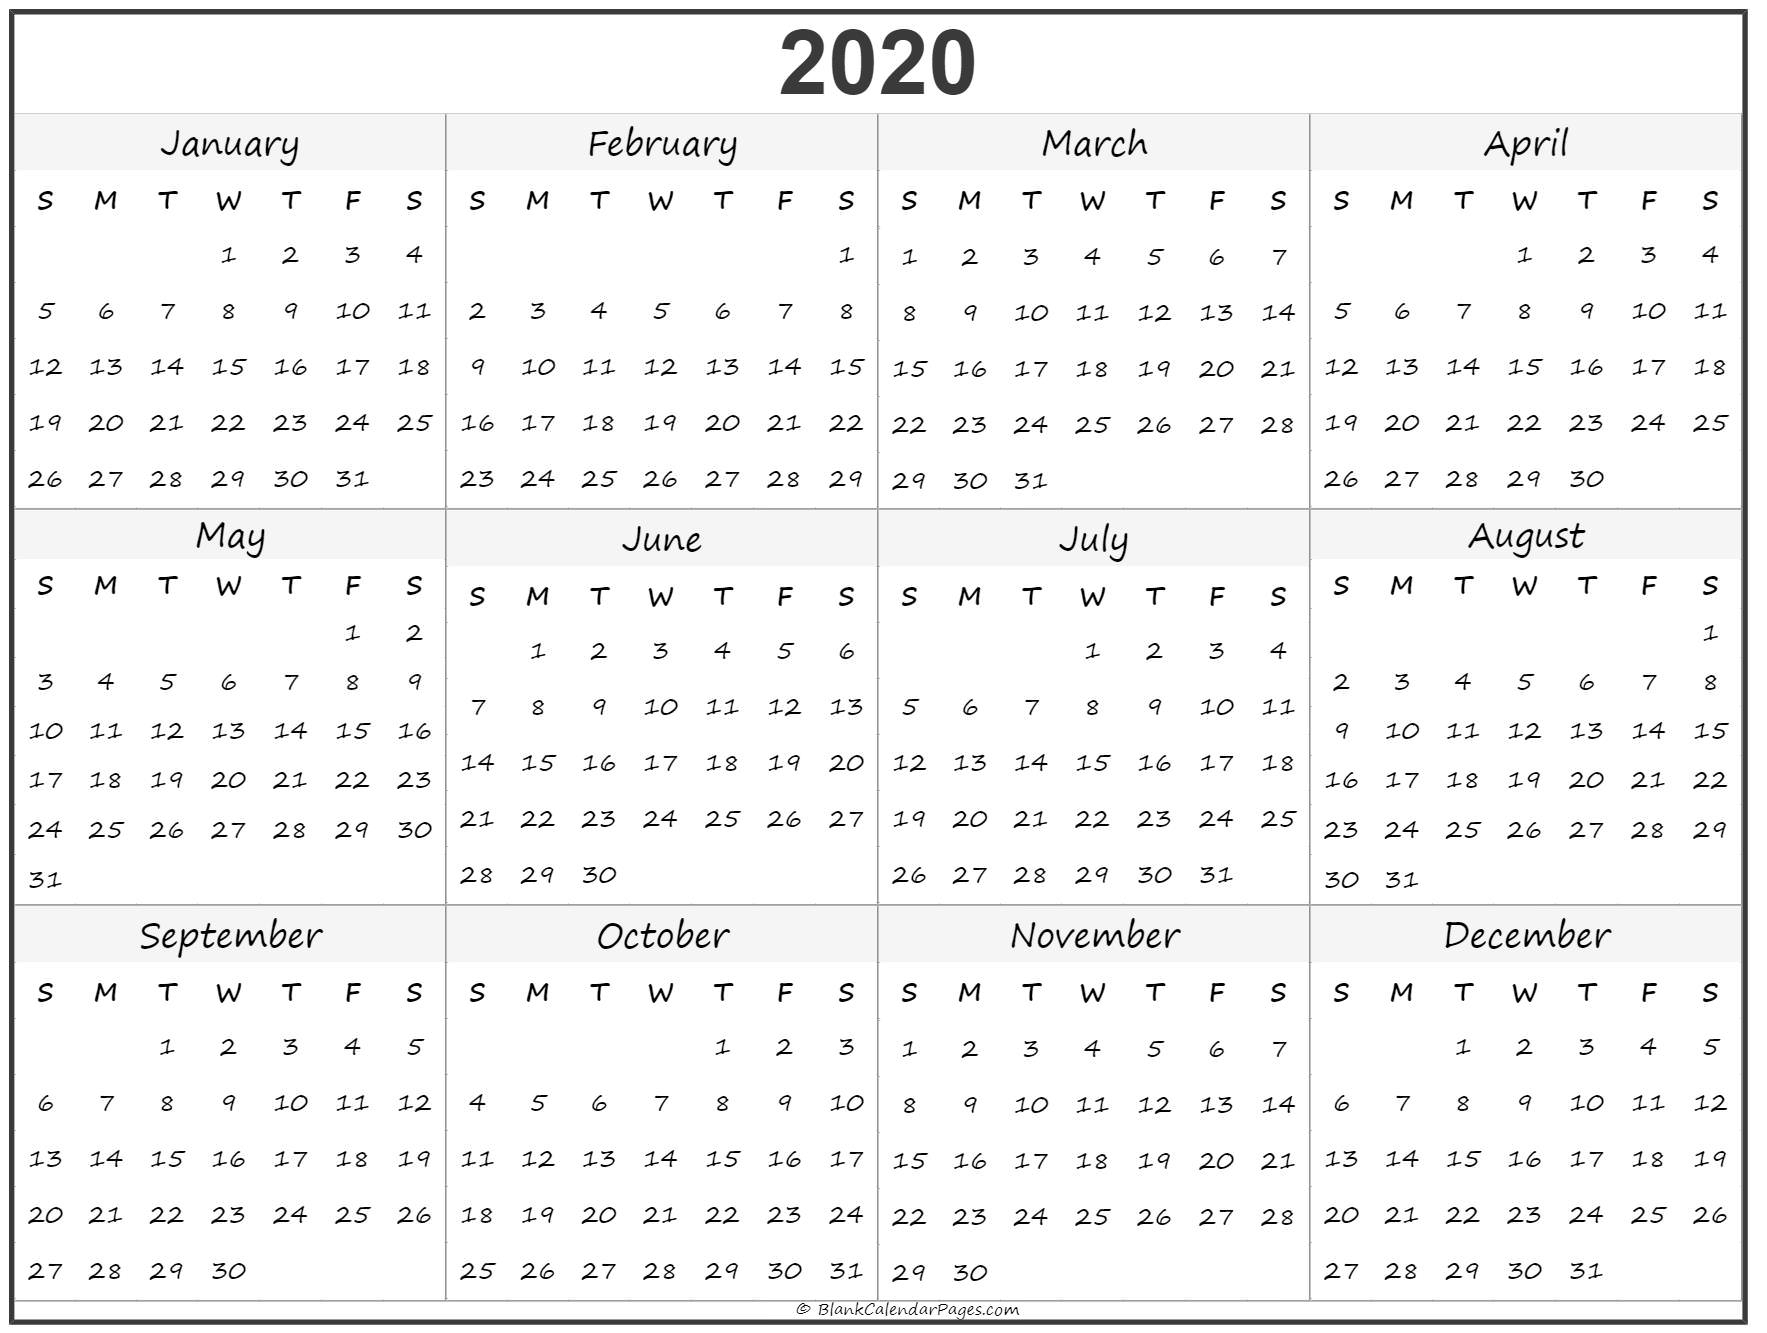 Yearly Printable 2020 Calendar Year – Get Your